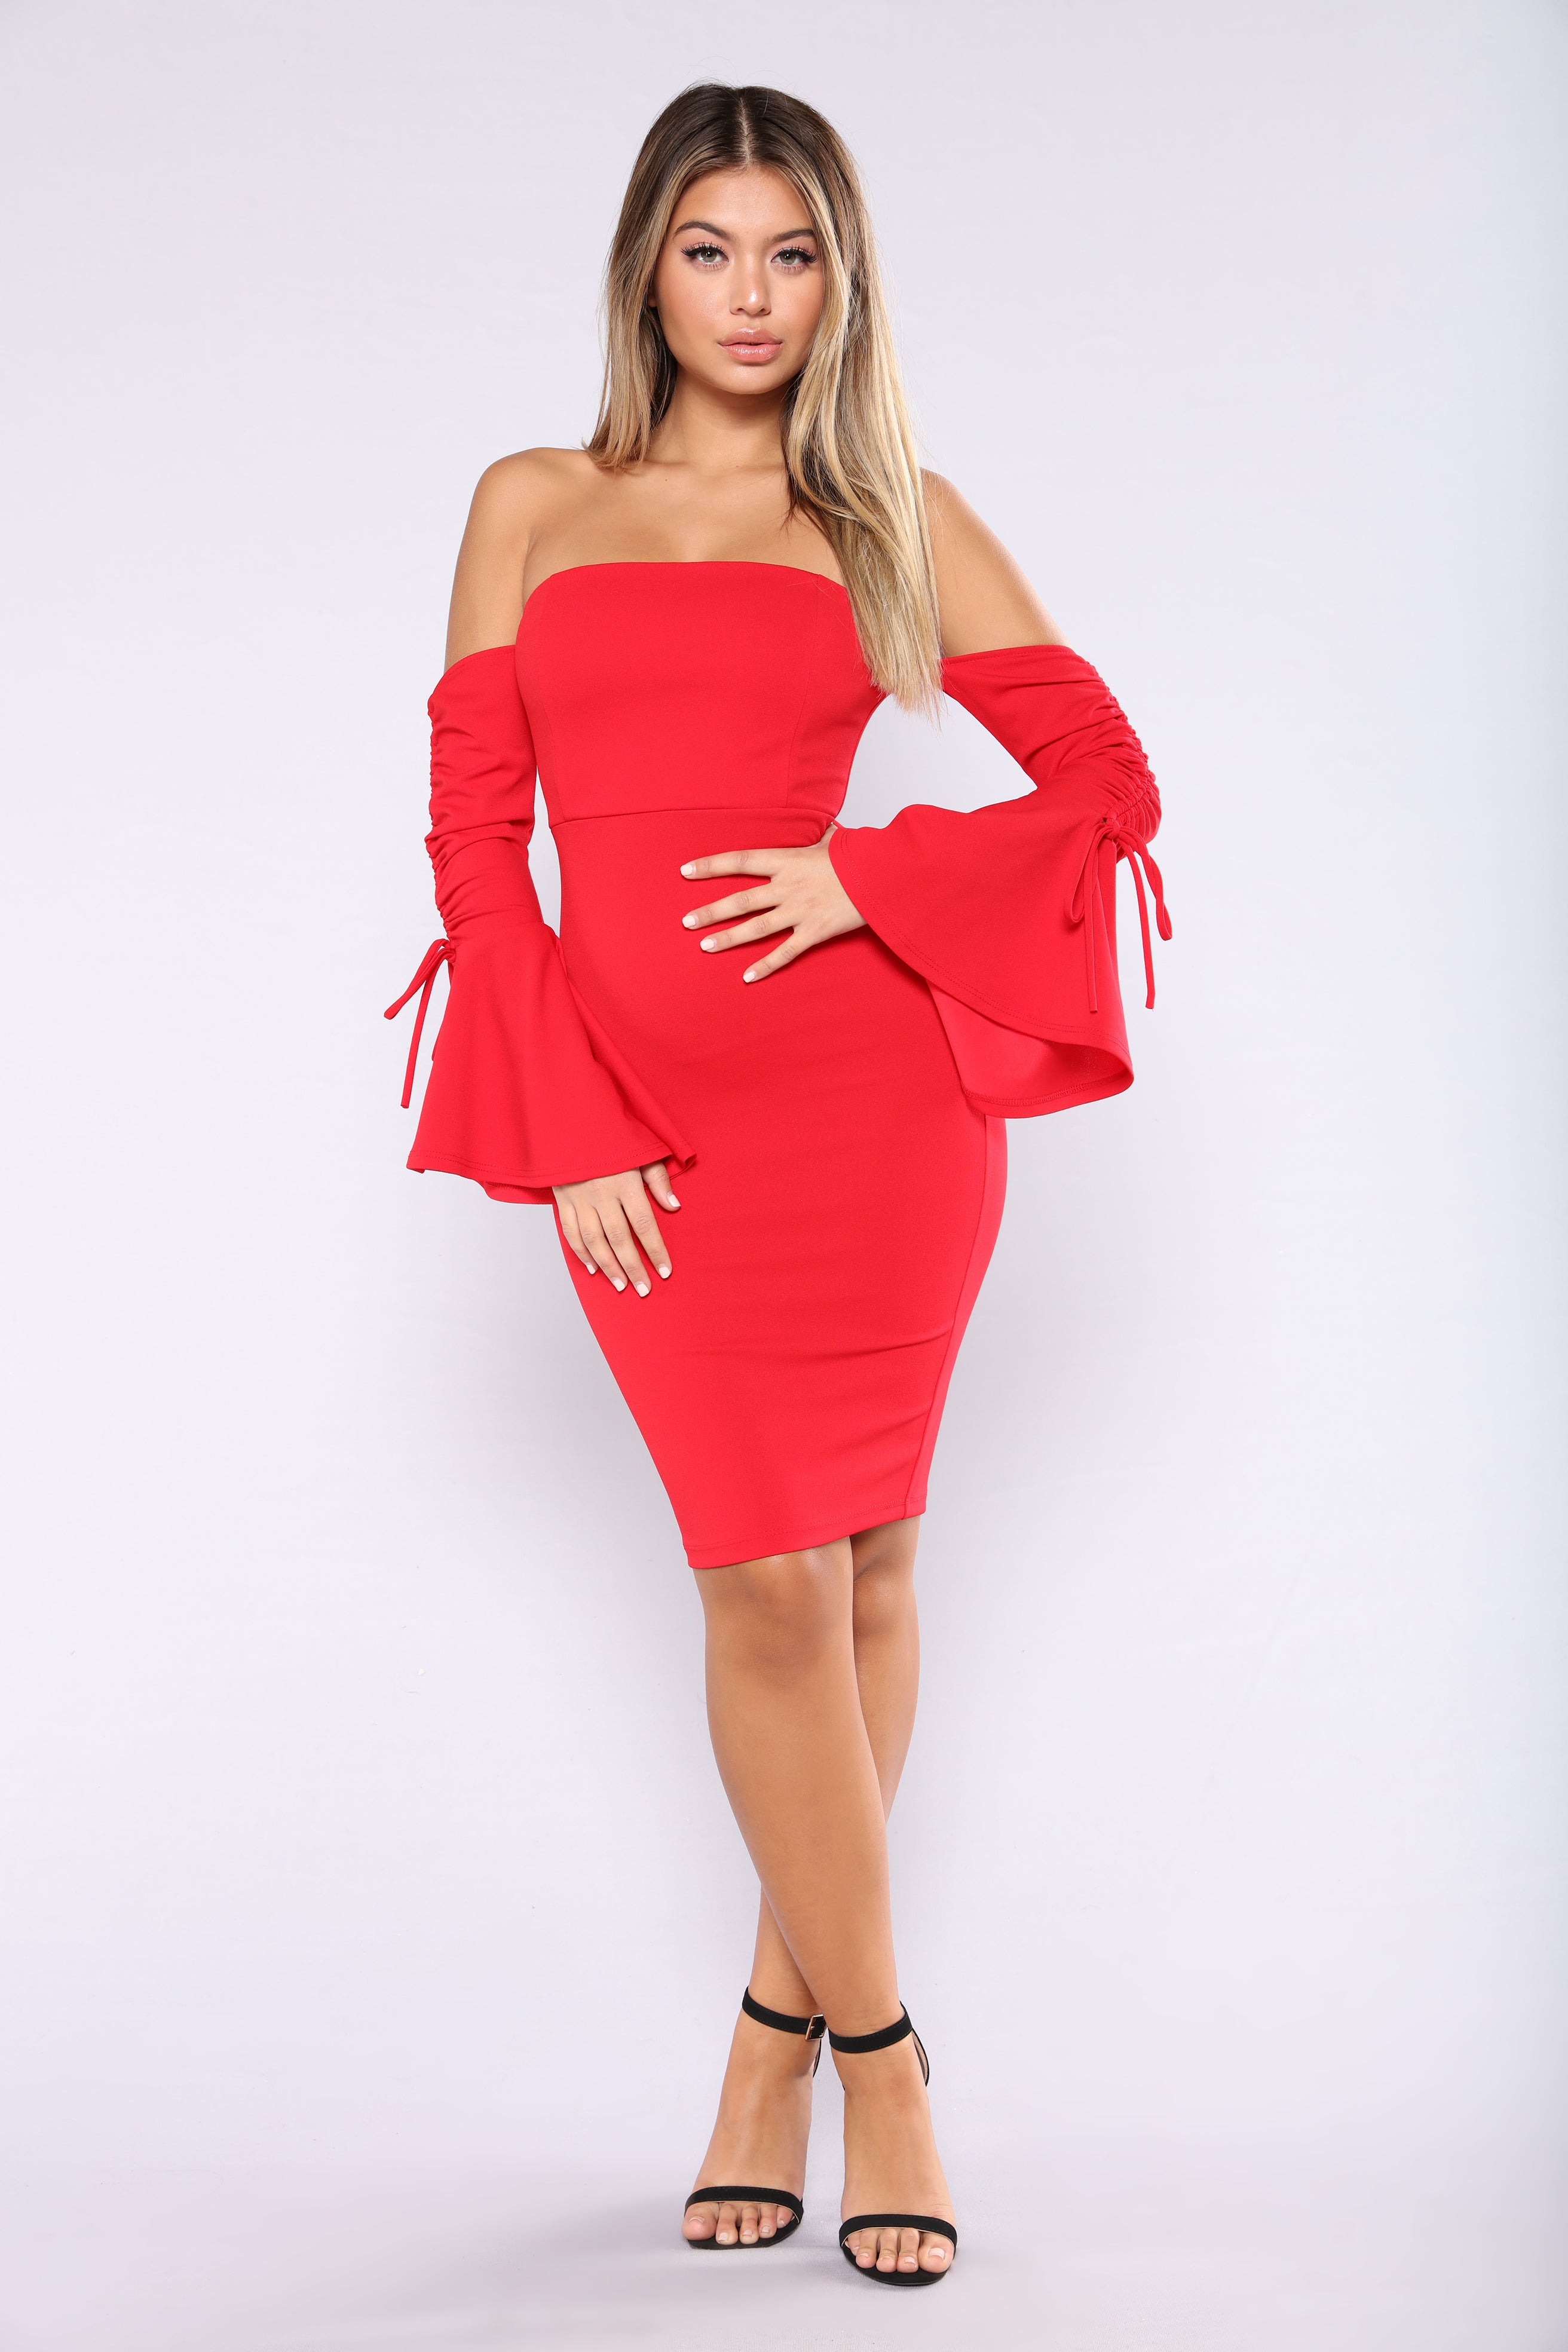 Cannes Festival Dress - Red